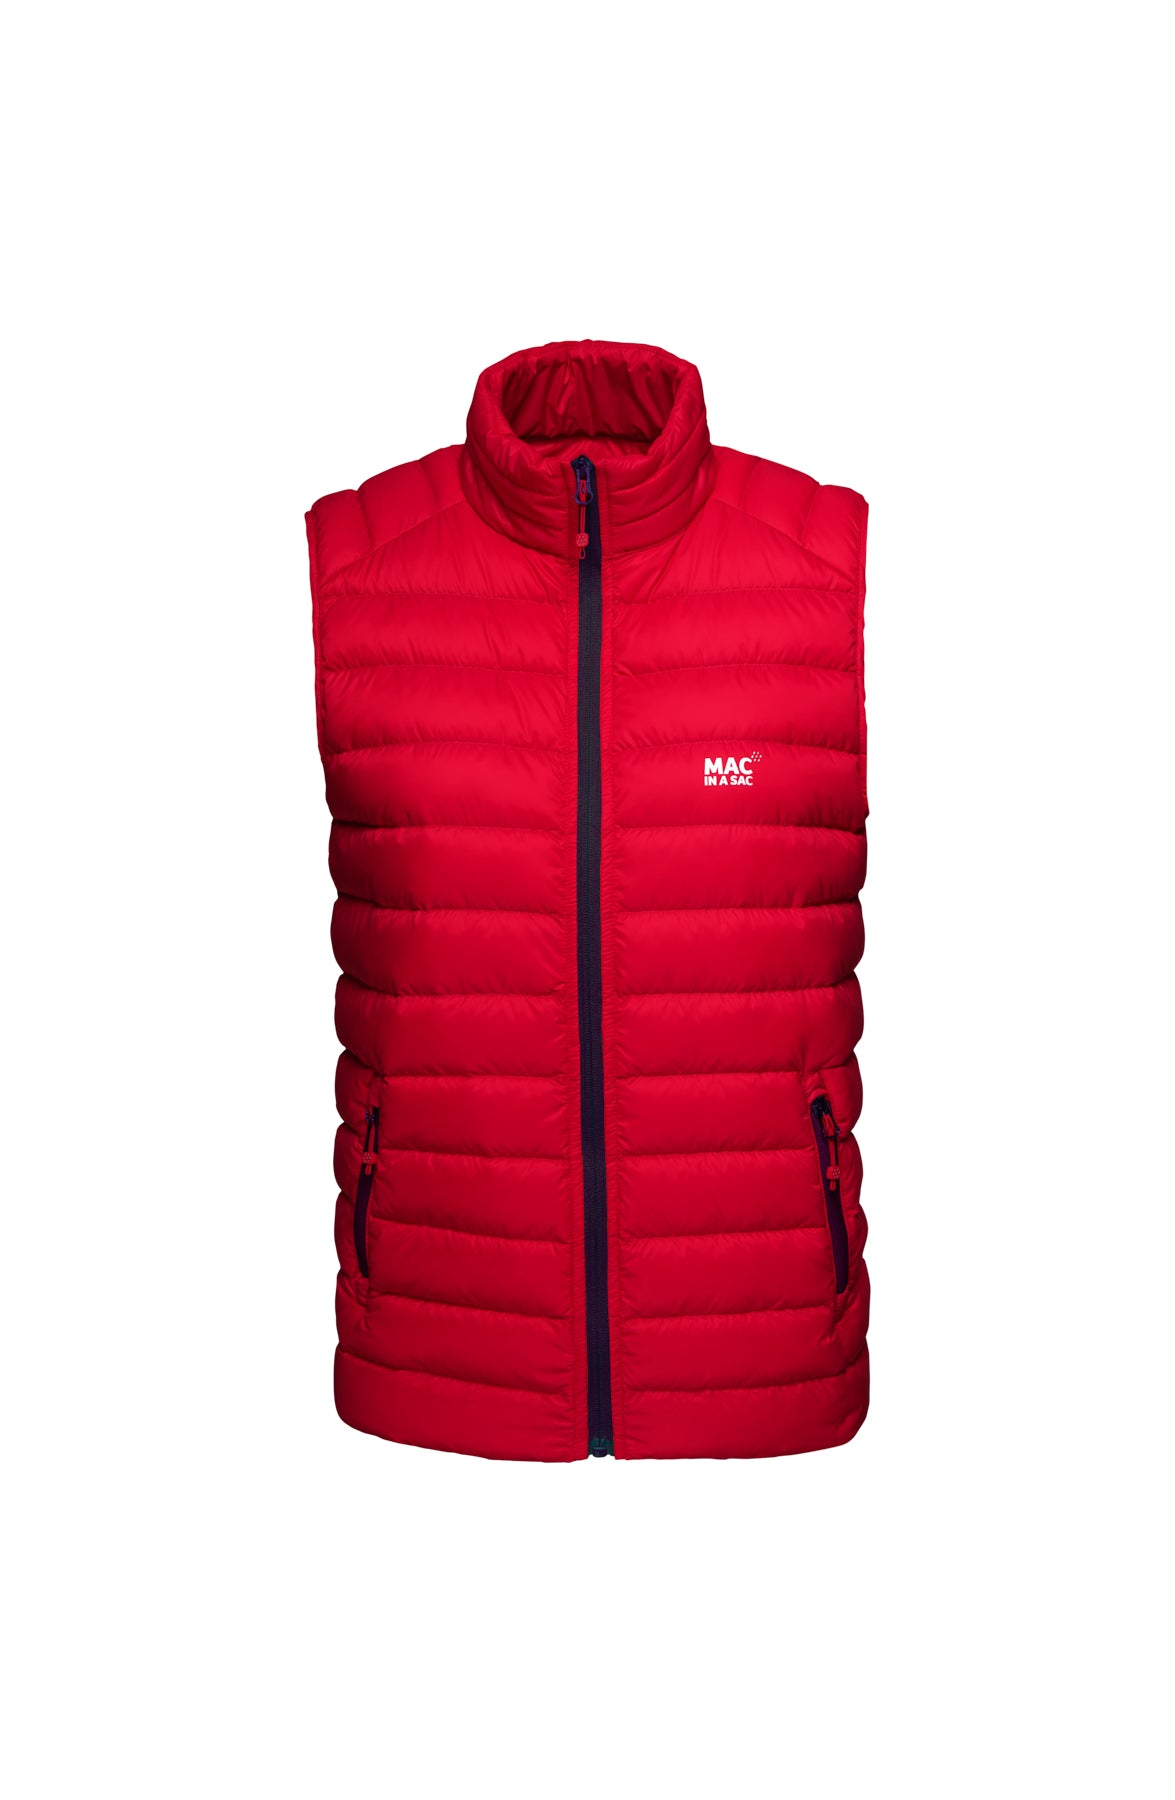 Mens Red Down Gilet - Packable